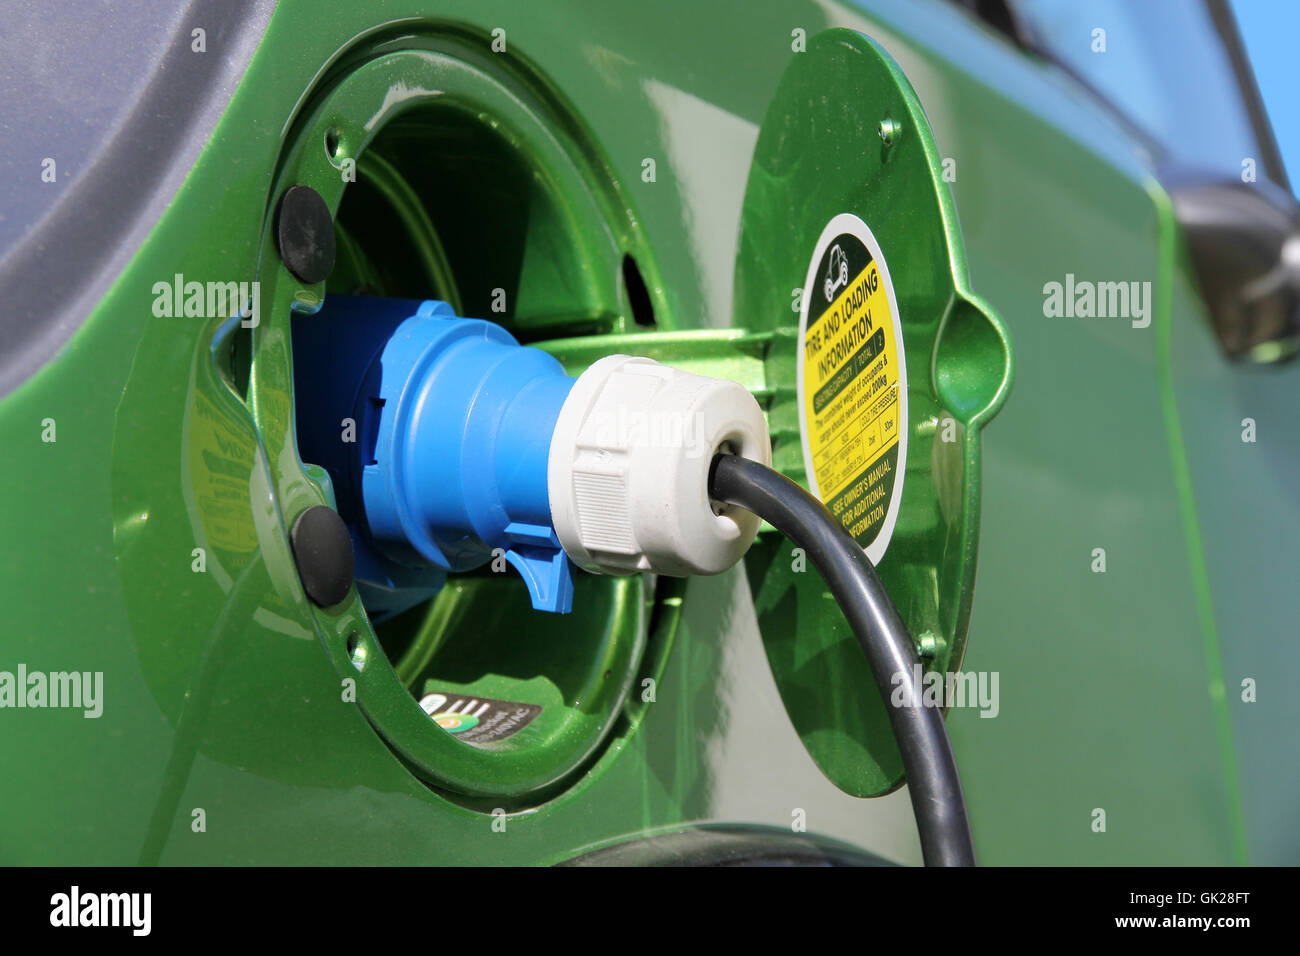 recharge current - Stock Image